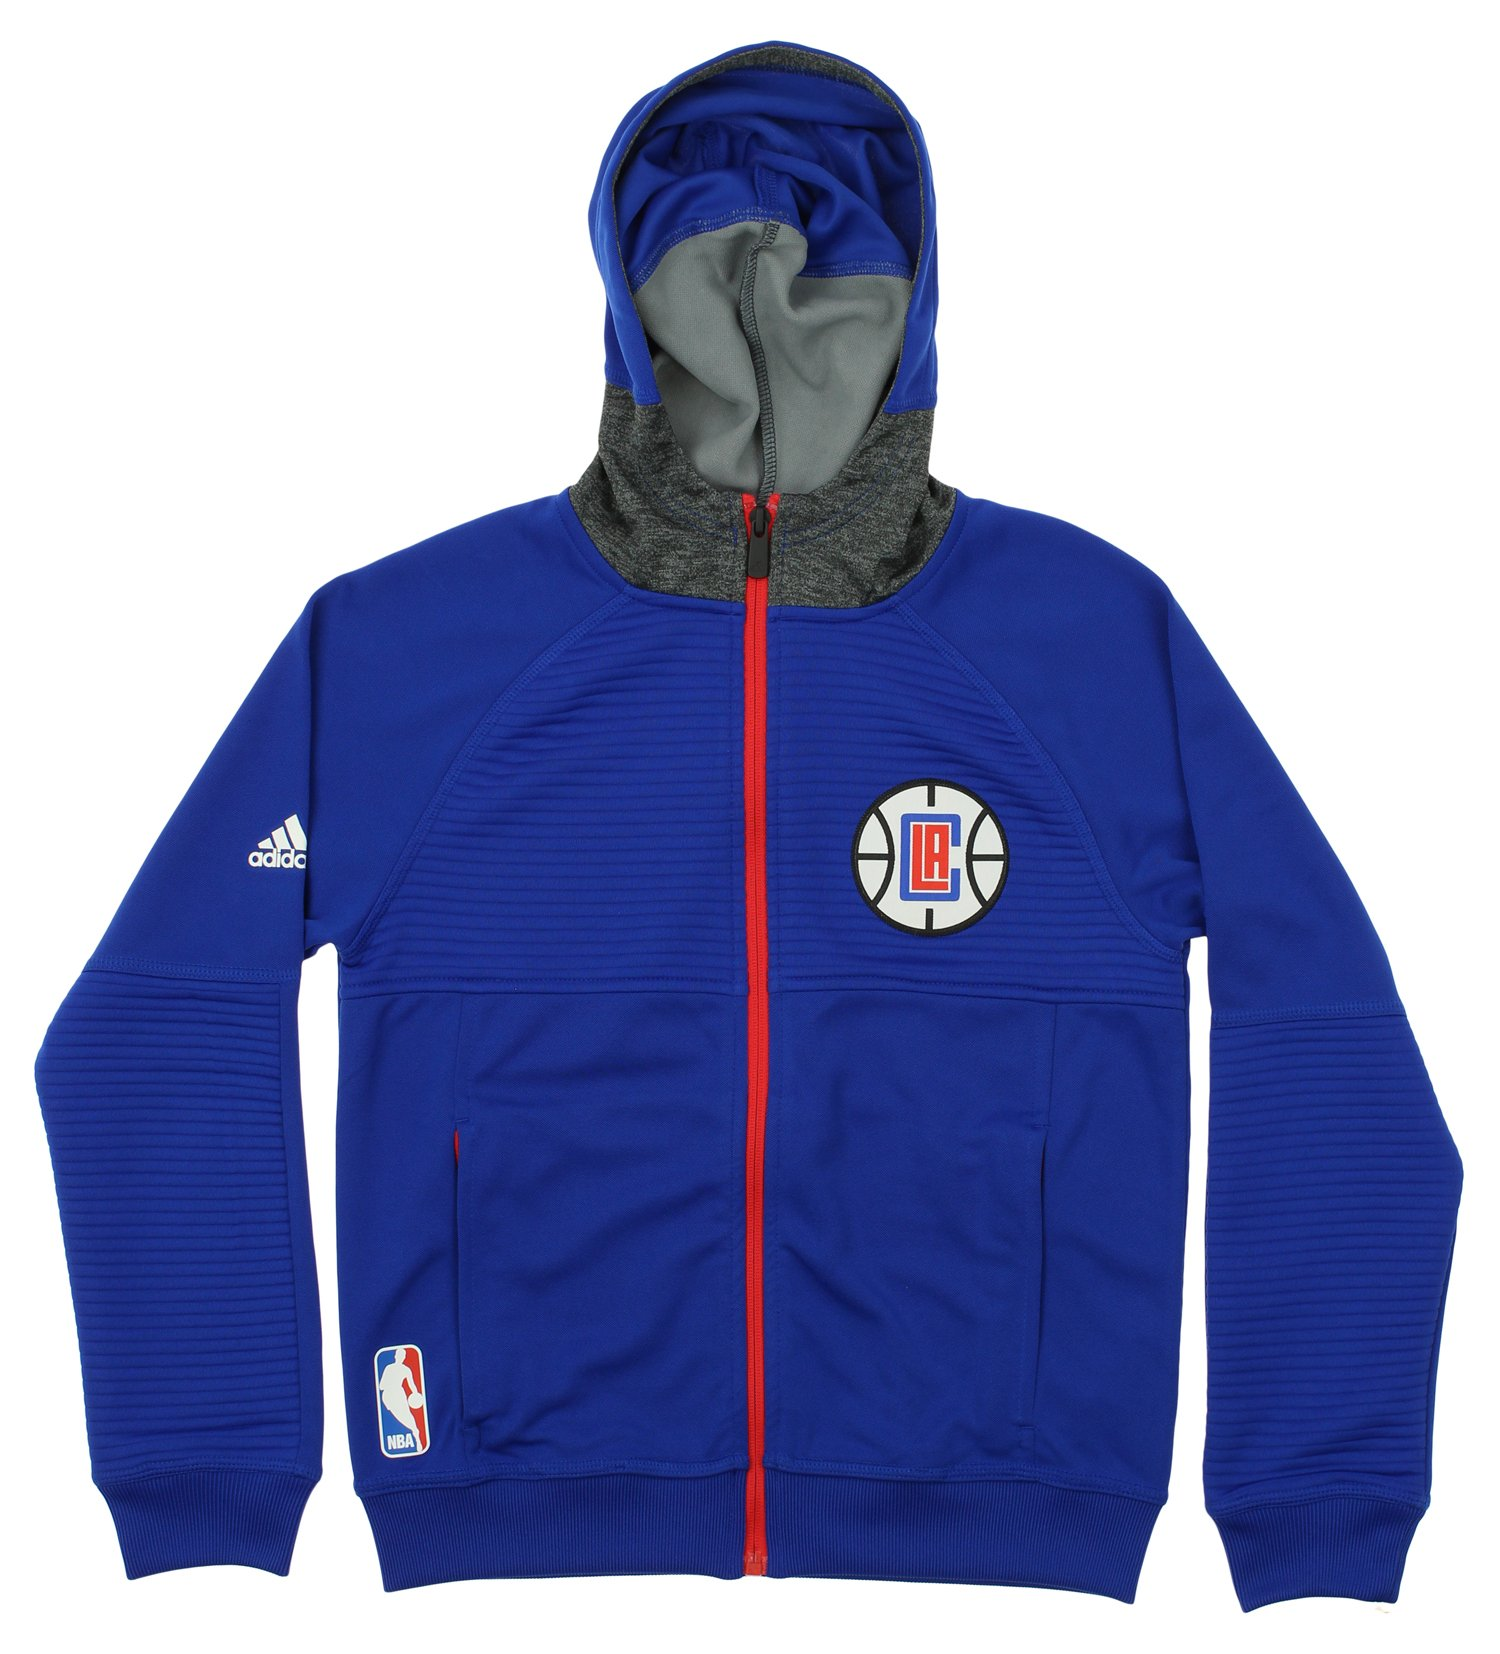 Adidas NBA Youth Los Angeles Clippers Pregame Full-zip Hoodie, Blue